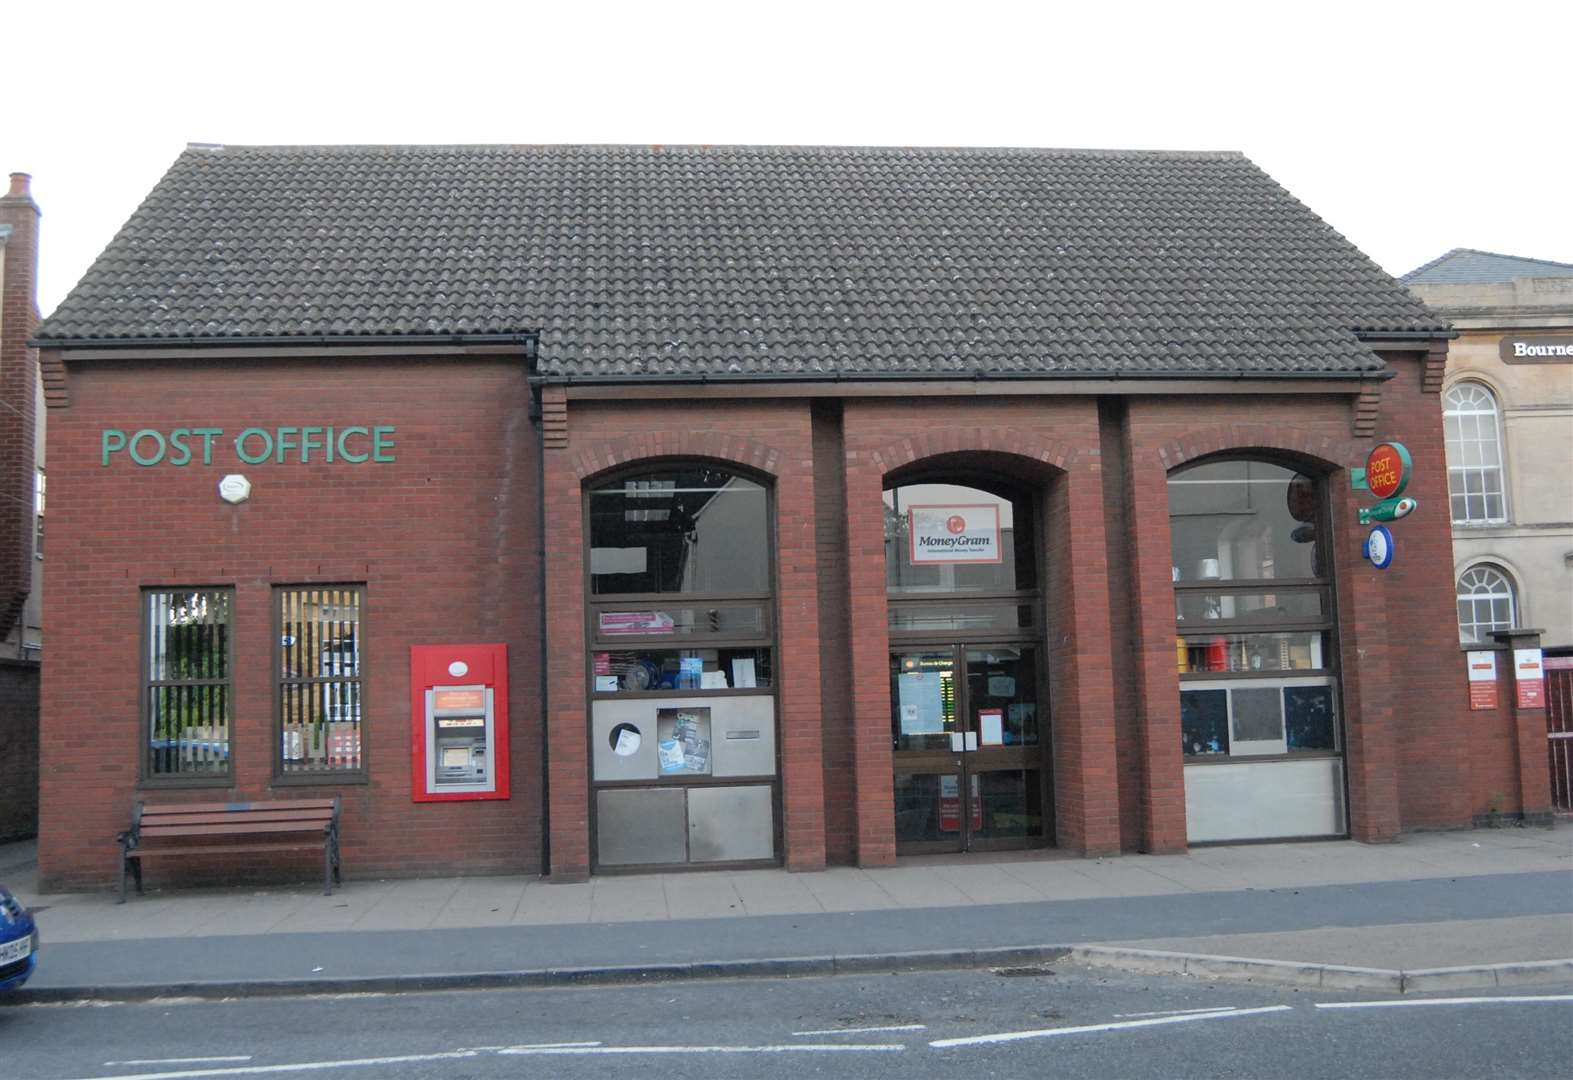 Agreed move for Bourne Post Office to nearby empty premises